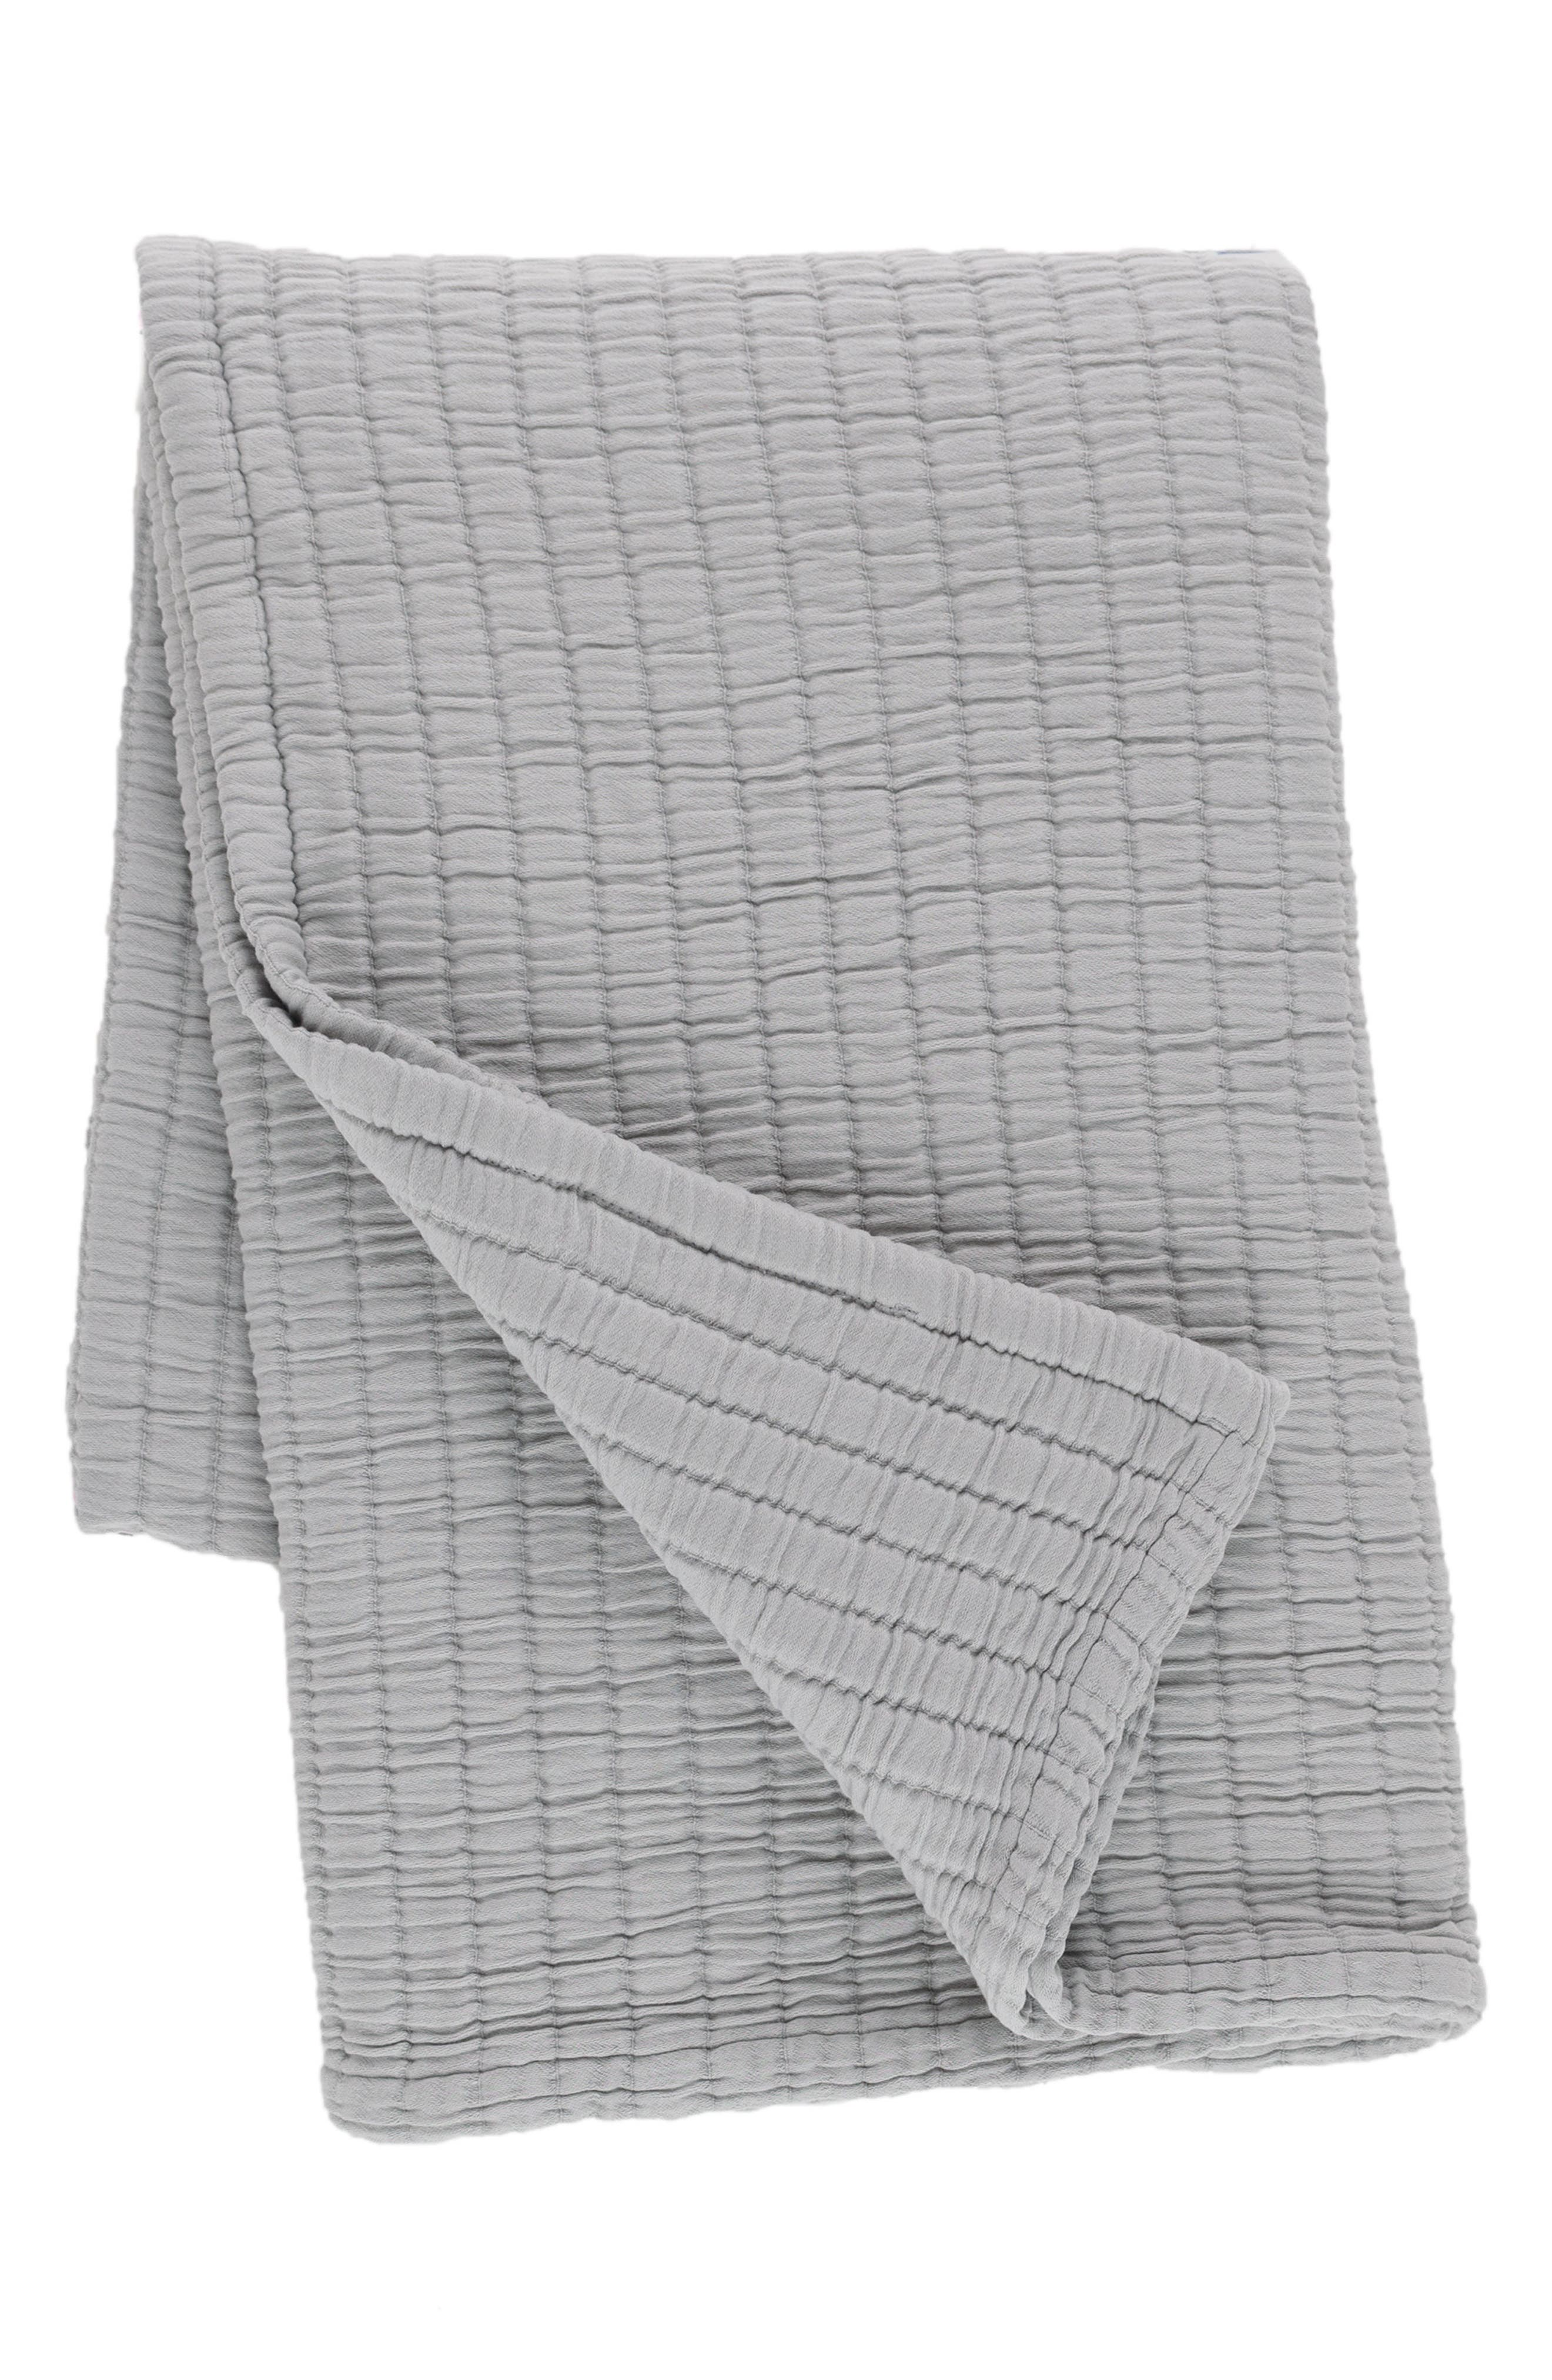 Matelassé Throw,                             Main thumbnail 1, color,                             GREY